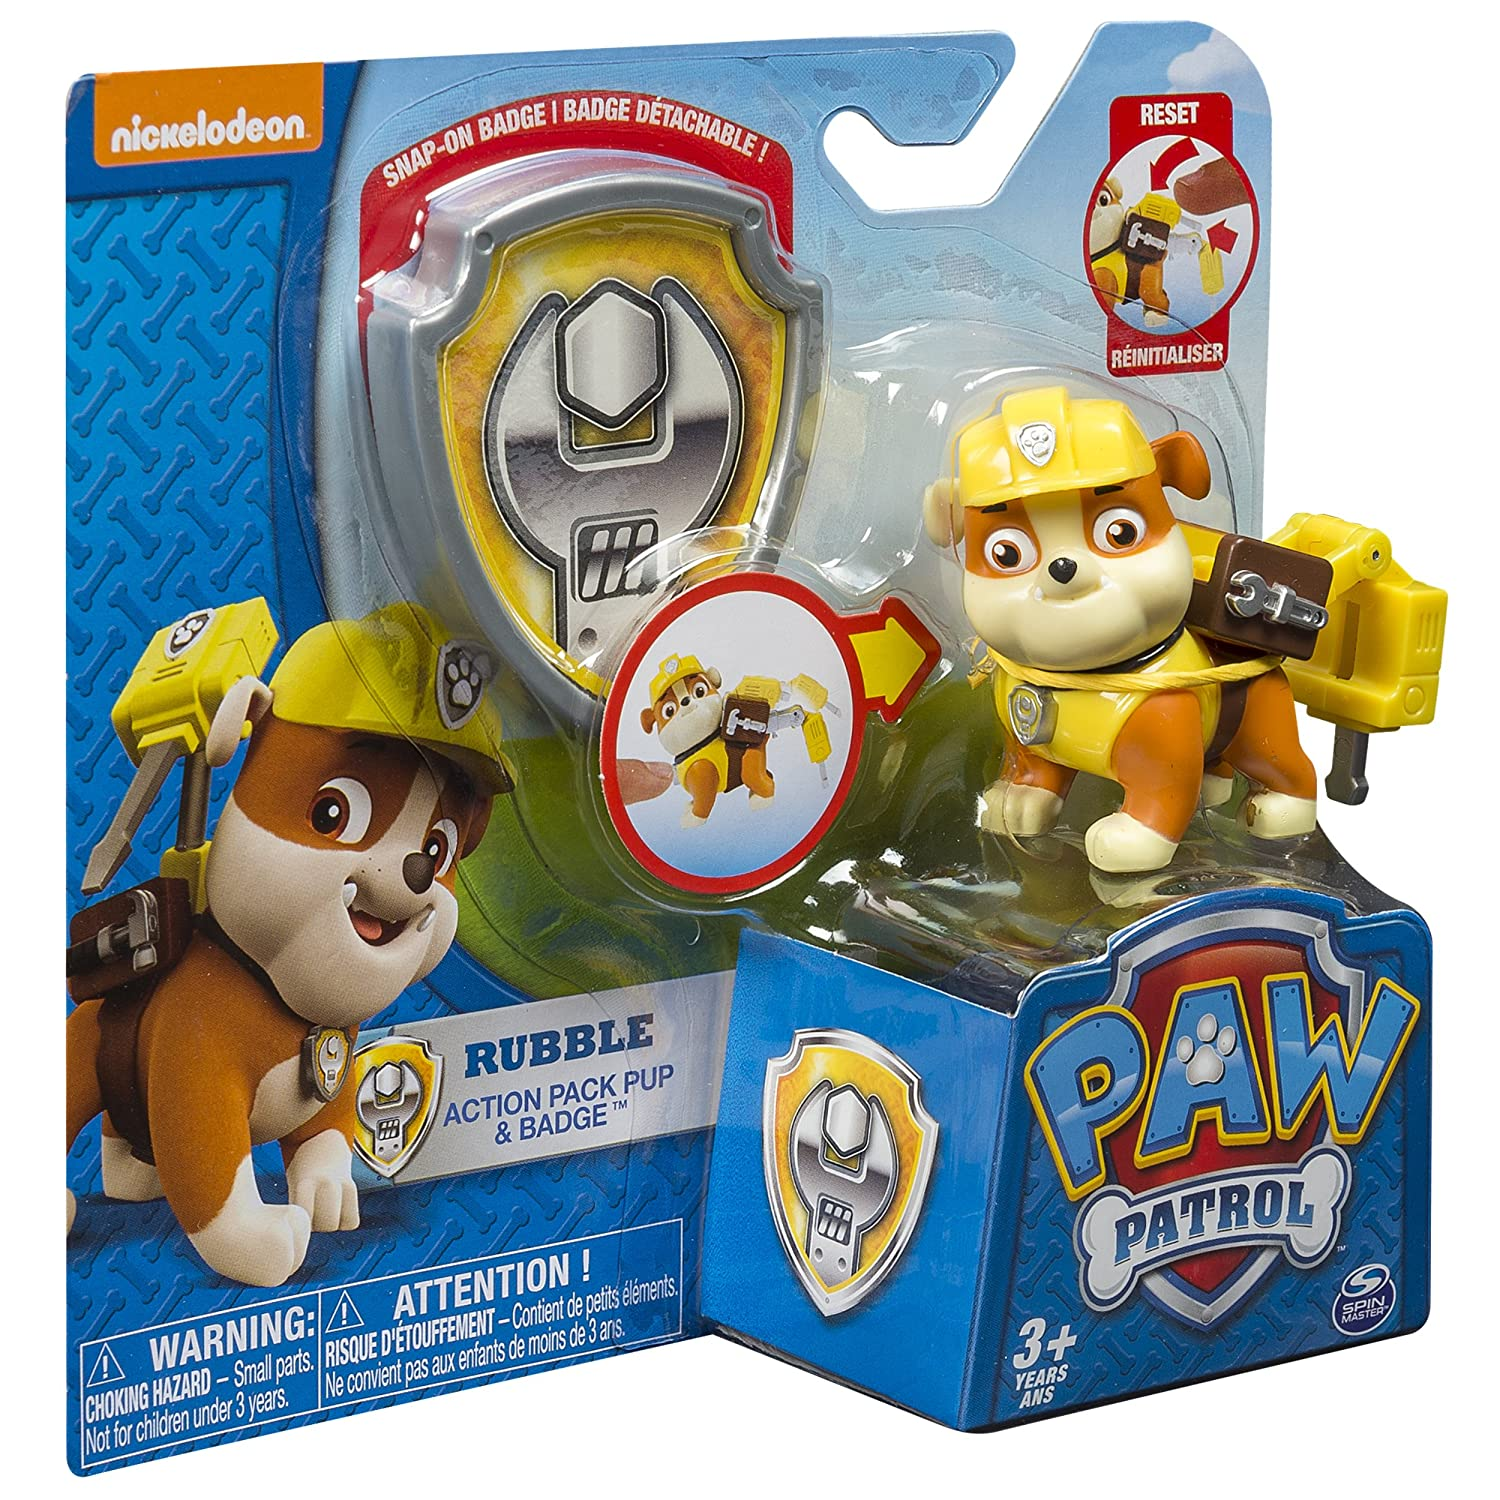 Paw Patrol Action Pack Pup & Badge, Rubble